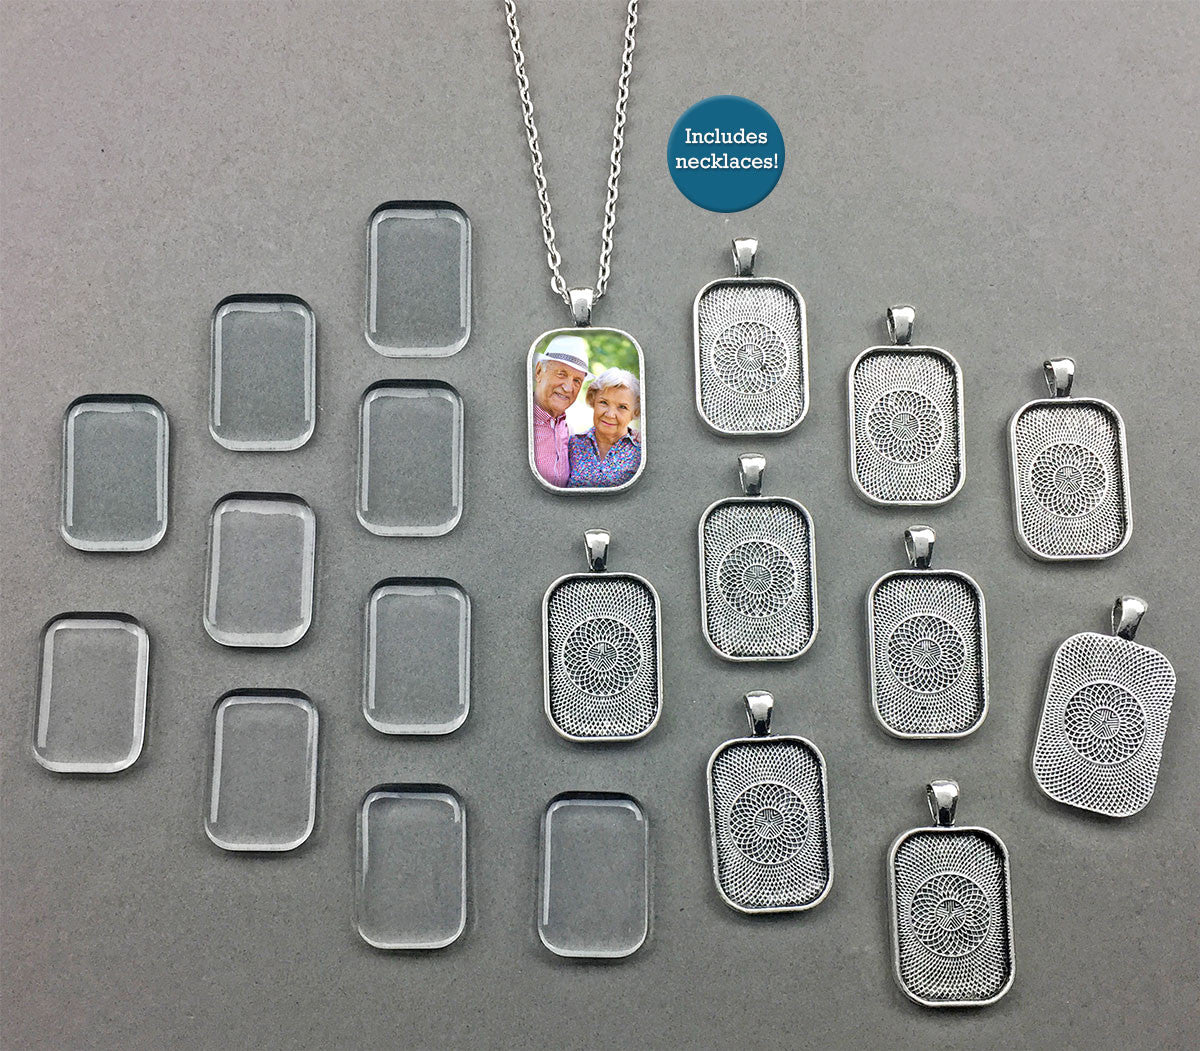 20 Pack Rounded Edge Antique Silver 20x30mm Rectangle Photo Jewelry Pendants w/ Glass and Link Chains